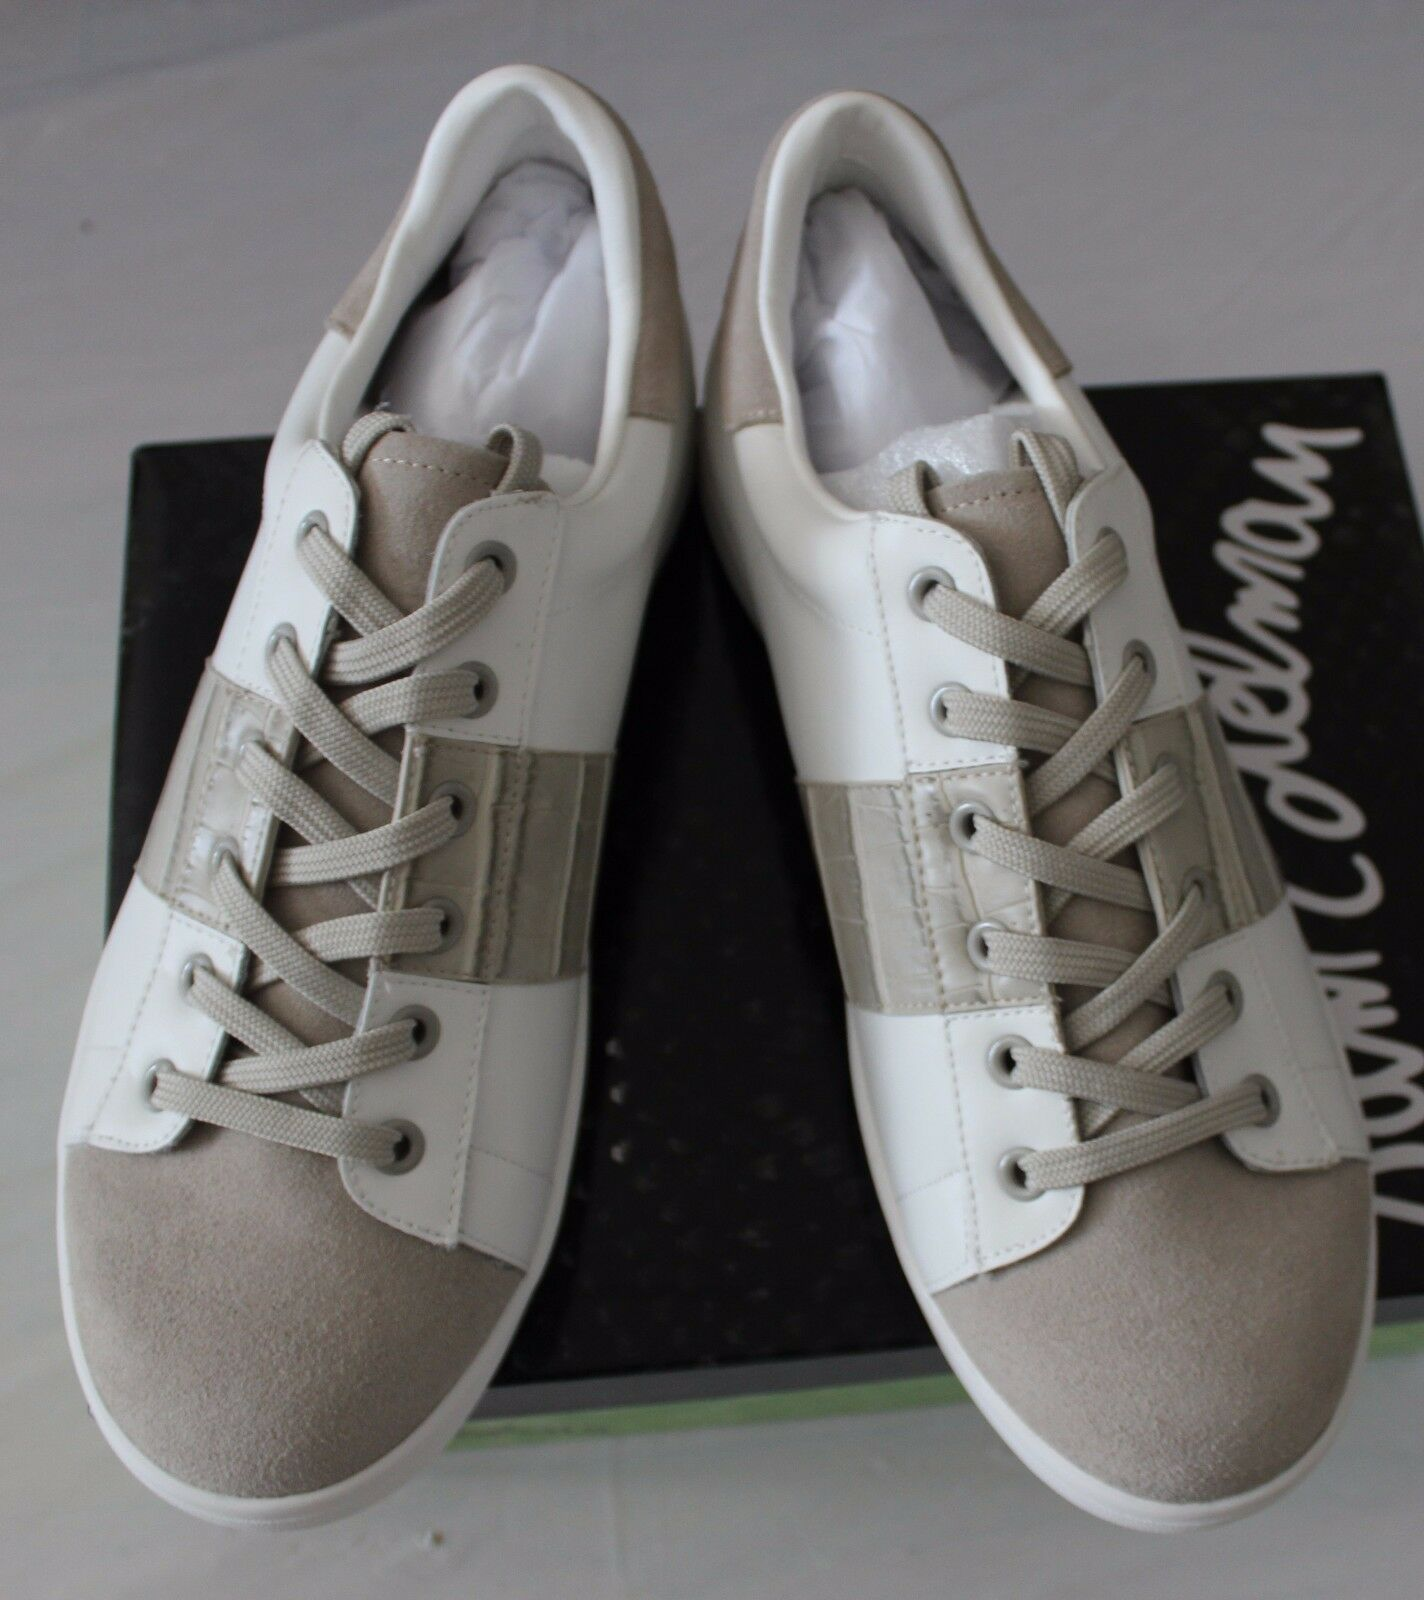 SAM EDELMAN MARQUETTE WHITE/GRAY LEATHER SNEAKER US 10M//